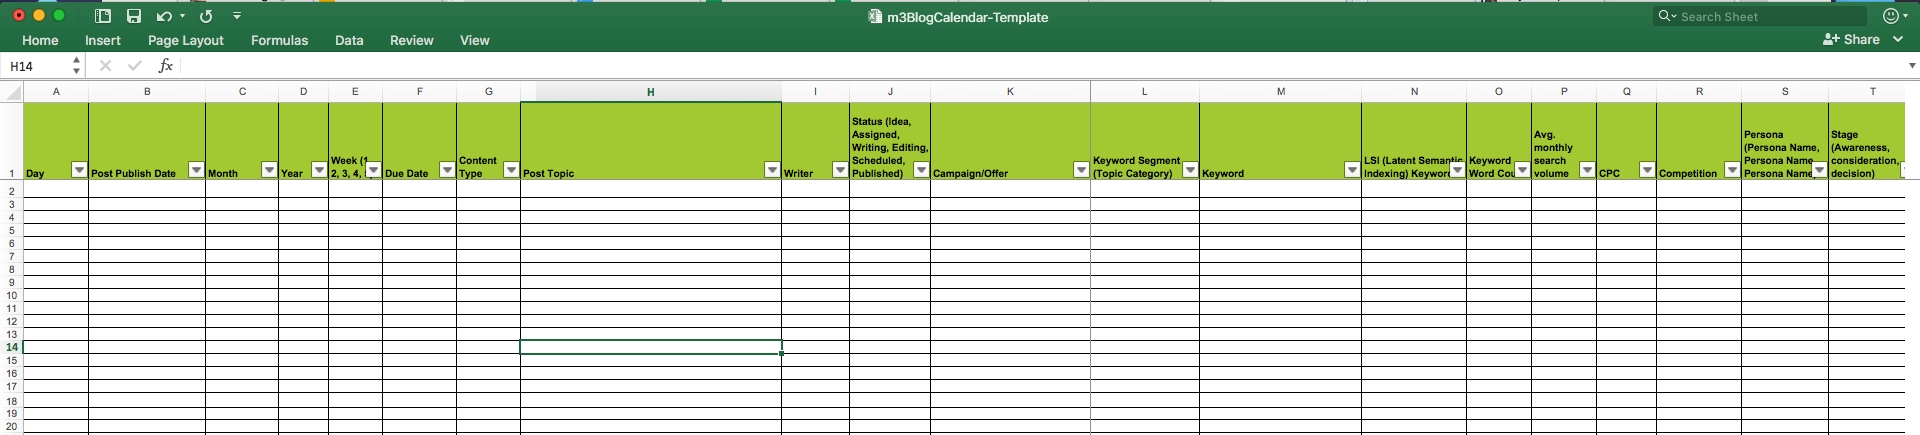 Editorial Calendar Templates For Content Marketing: The Calendar Template On Excel